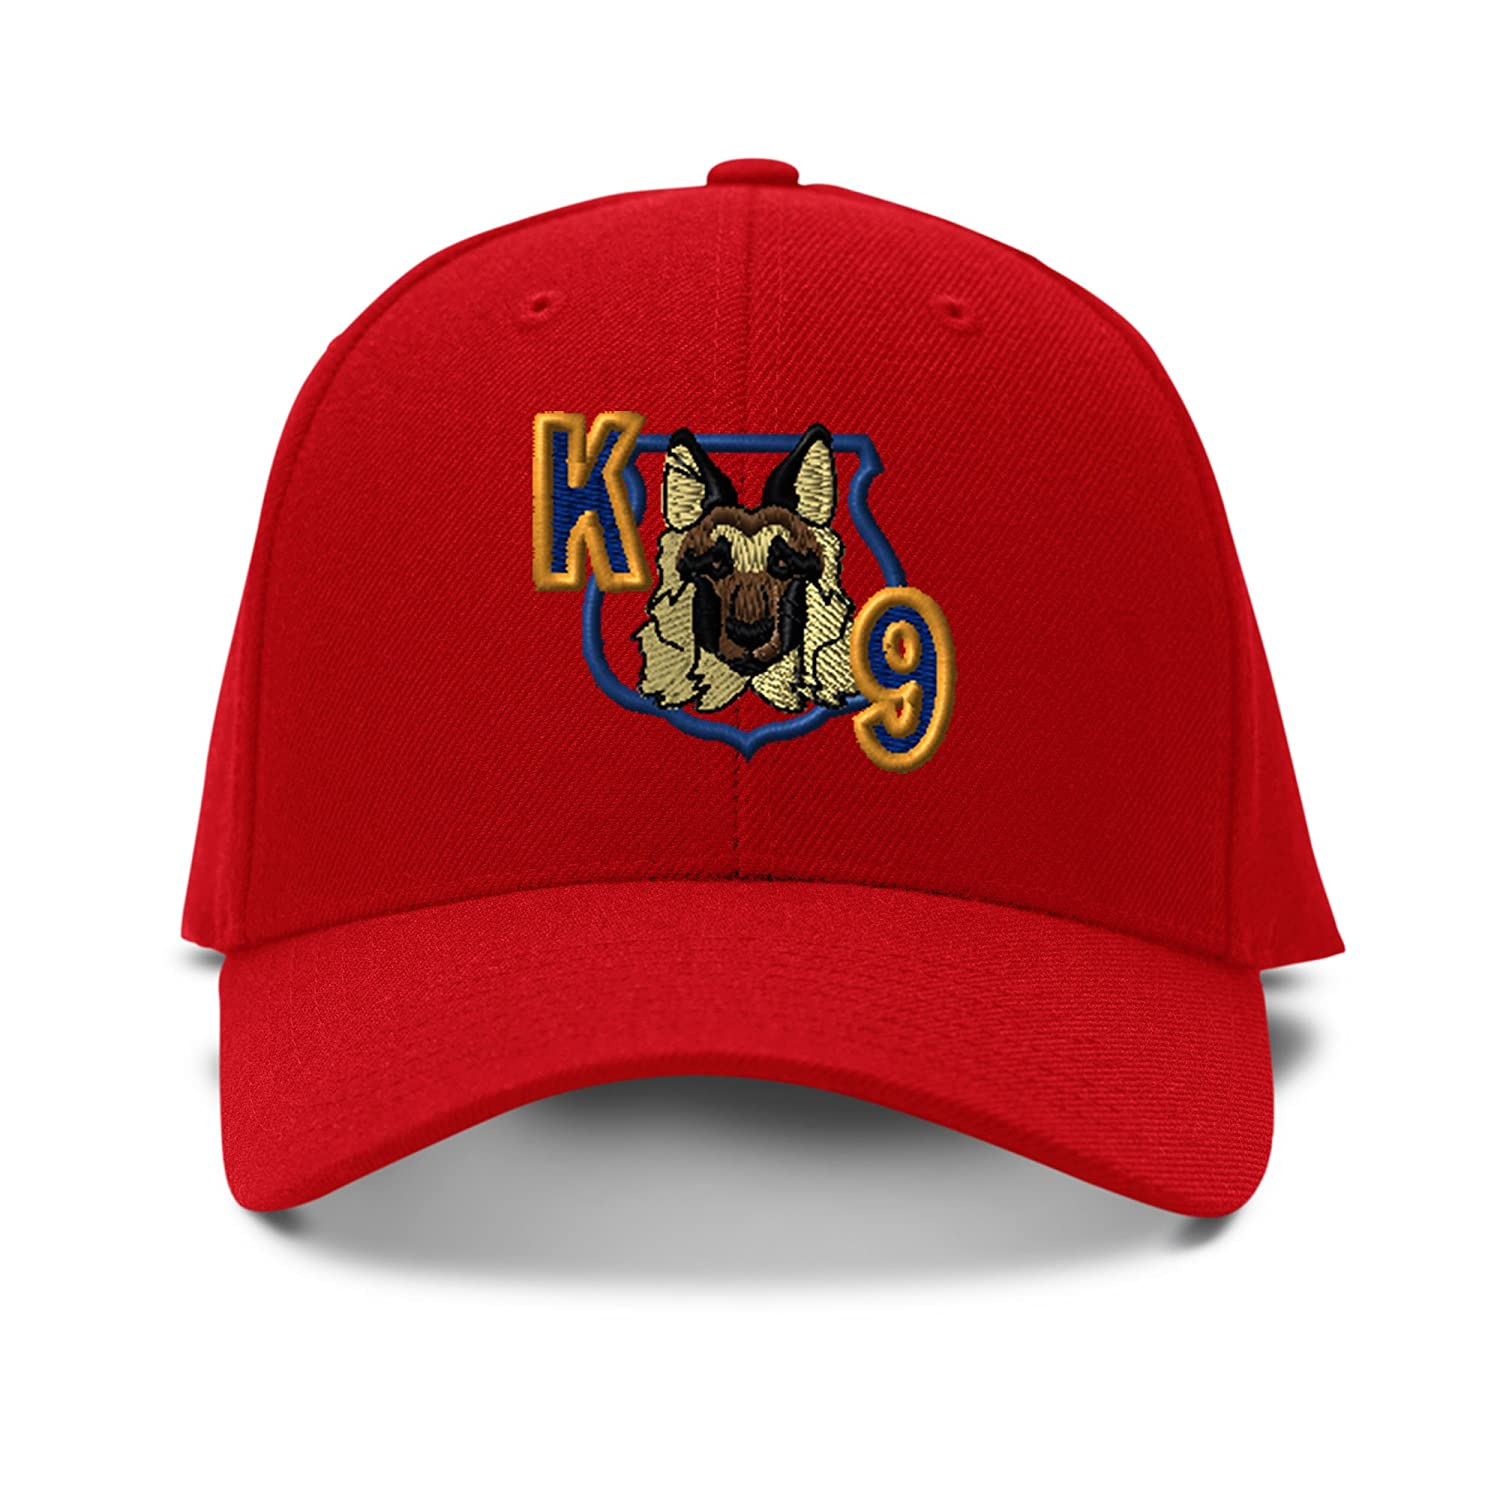 Speedy Pros K-9 Unit Dog Police Embroidery Adjustable Structured Baseball Hat CAPGLG0616_B